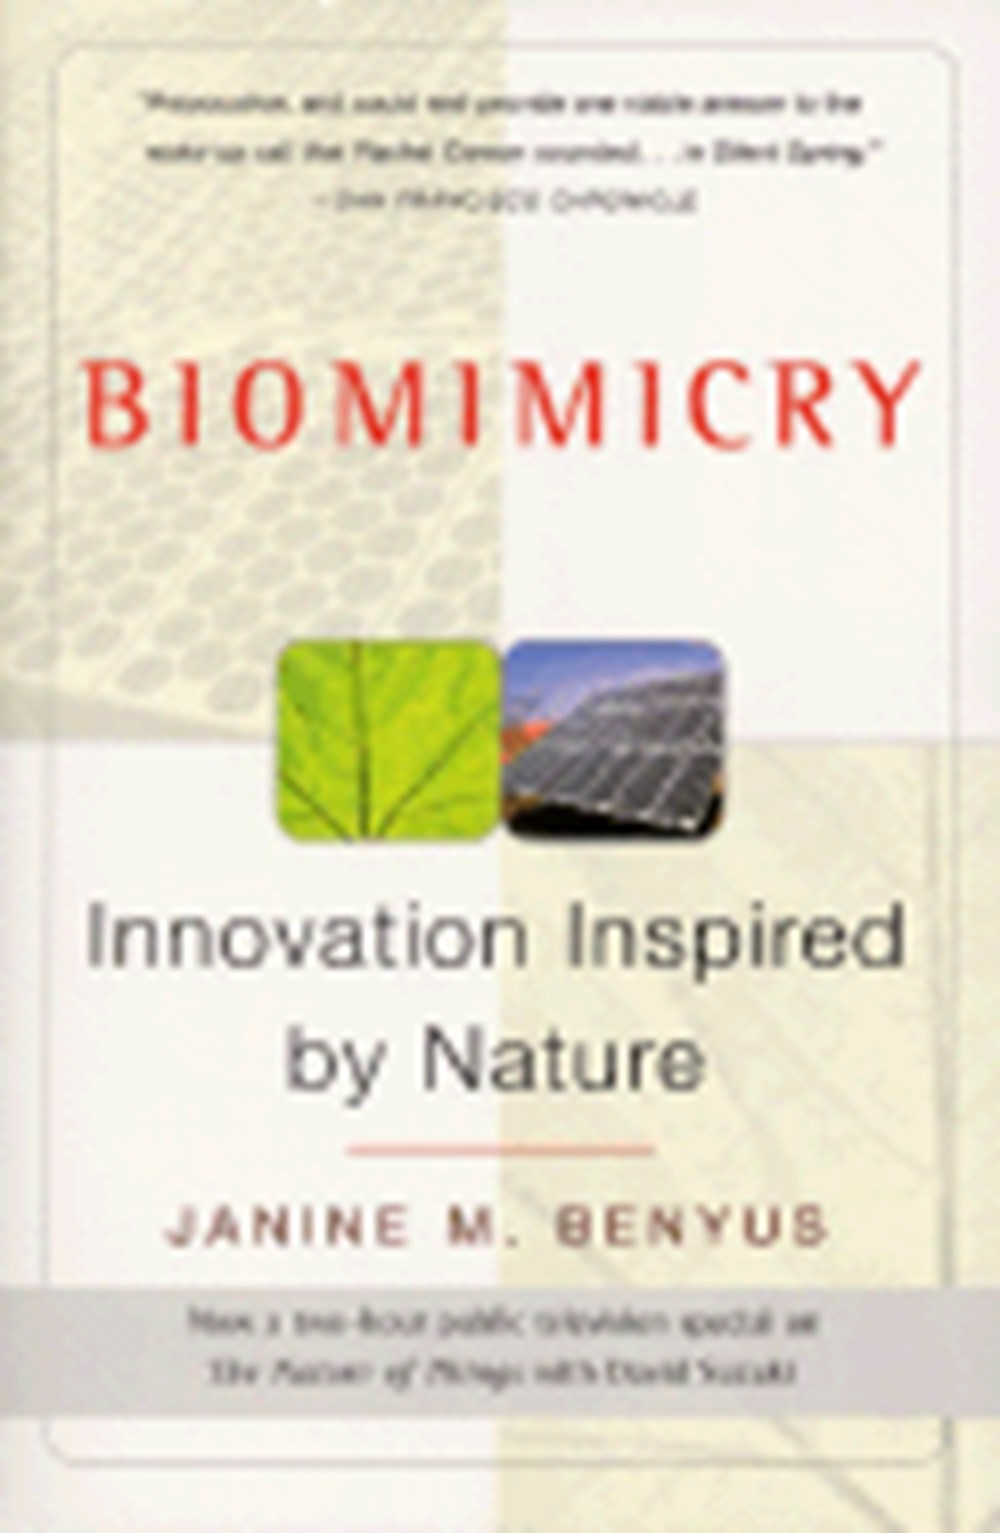 Biomimicry Innovation Inspired by Nature